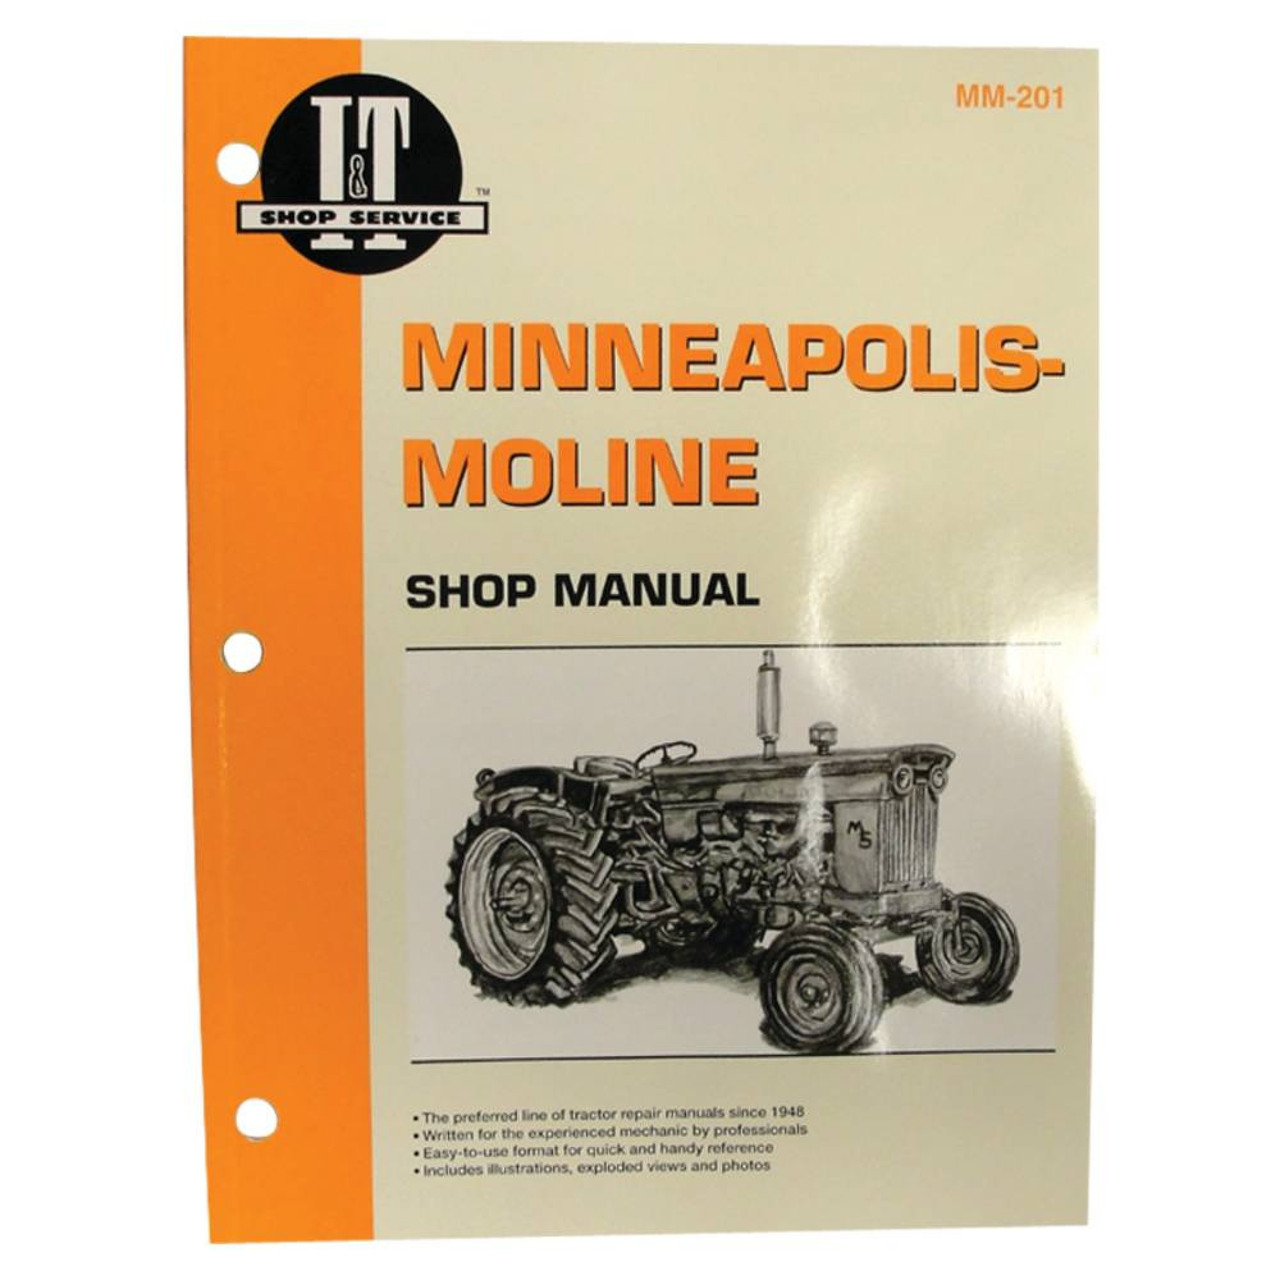 new service manual for minneapolis moline tractor mm201 335 4 5 battery wire diagram avery a tractor wire diagrams [ 900 x 900 Pixel ]